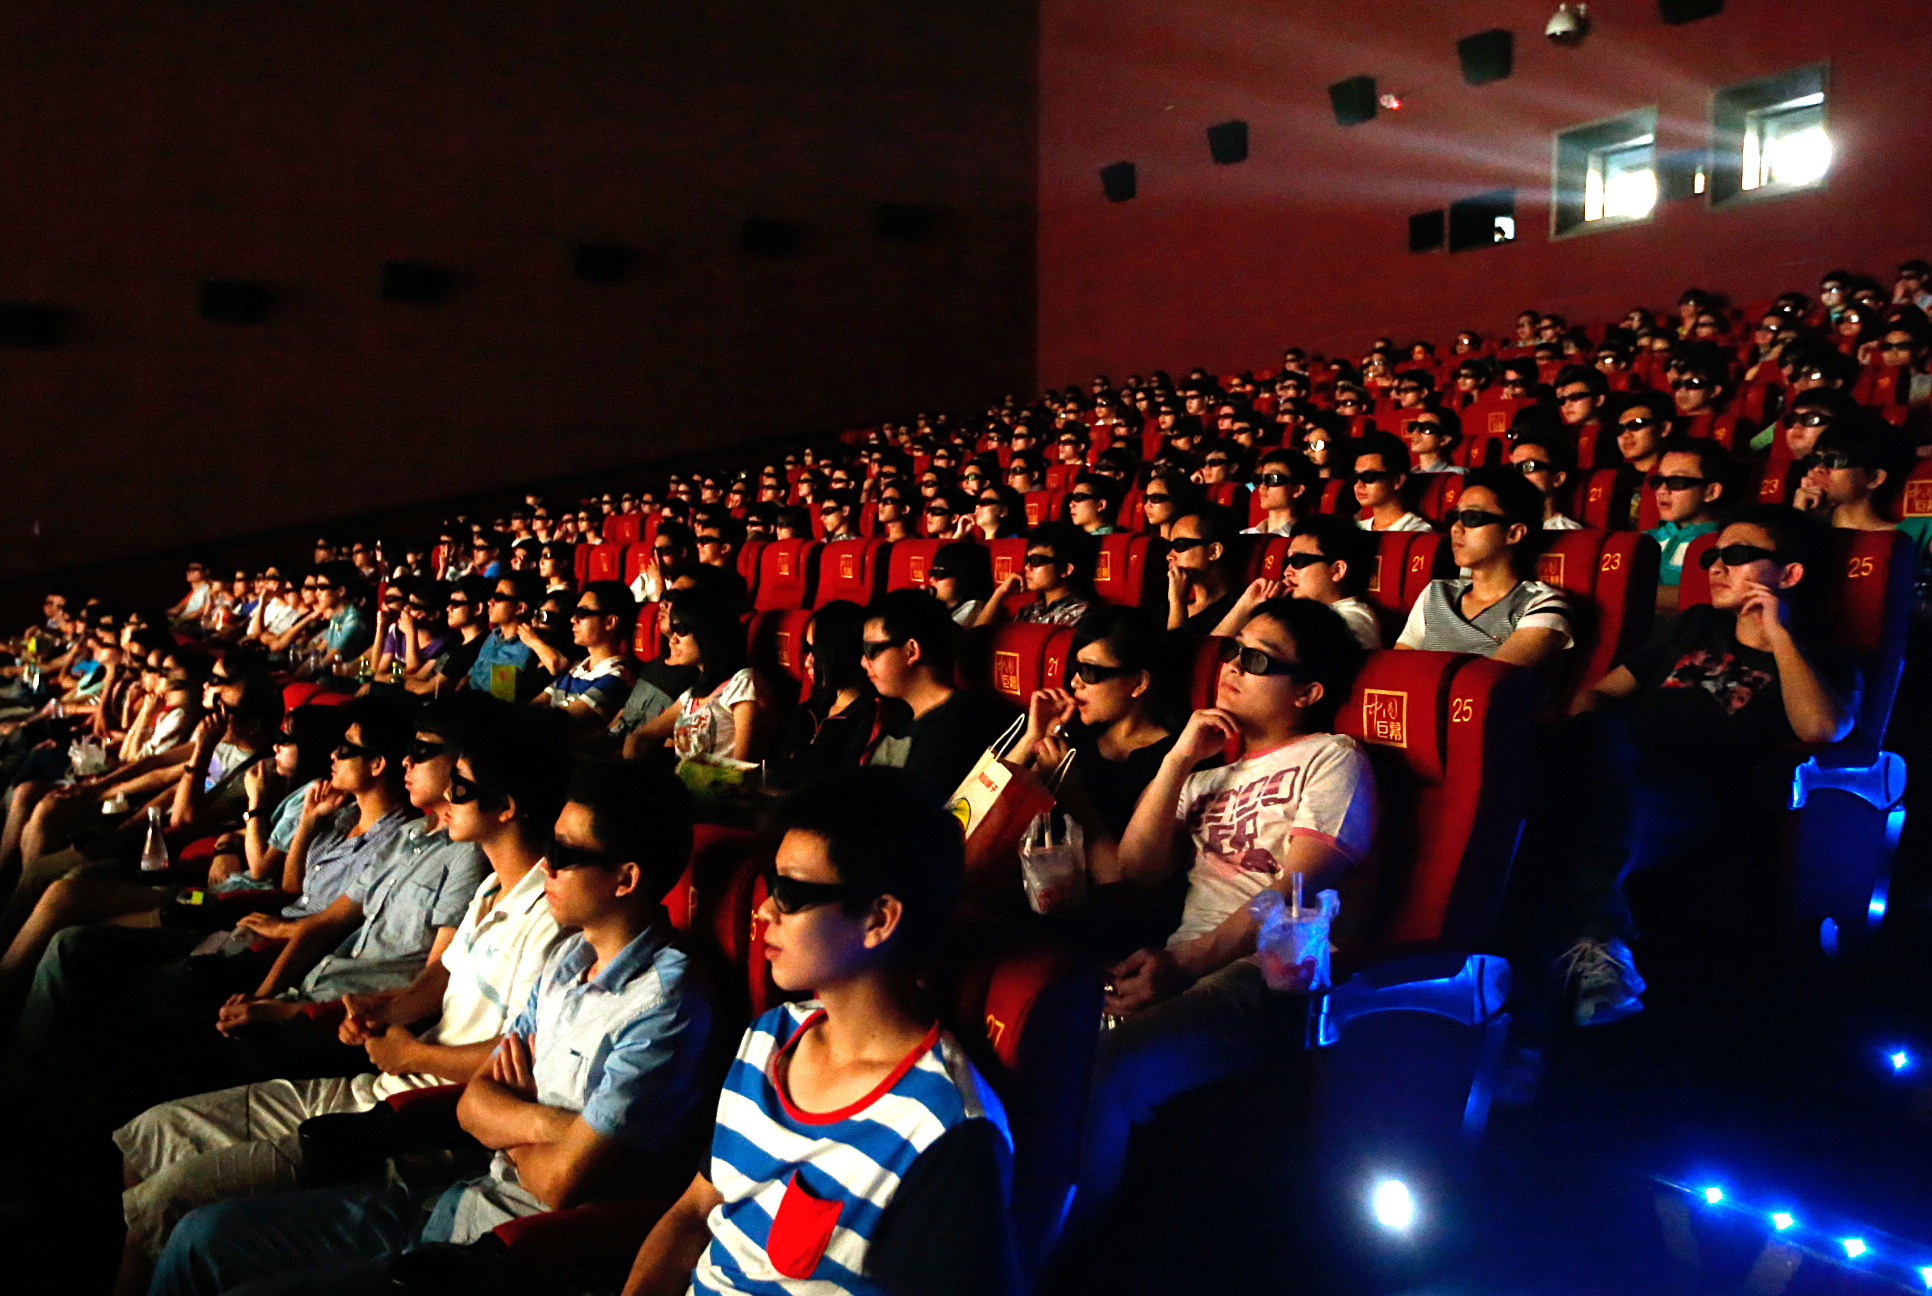 An audience watches  Transformers - Age Of Extinction  through 3D glasses at a cinema on June 27, 2014 in Wuhan, Hubei province, China.